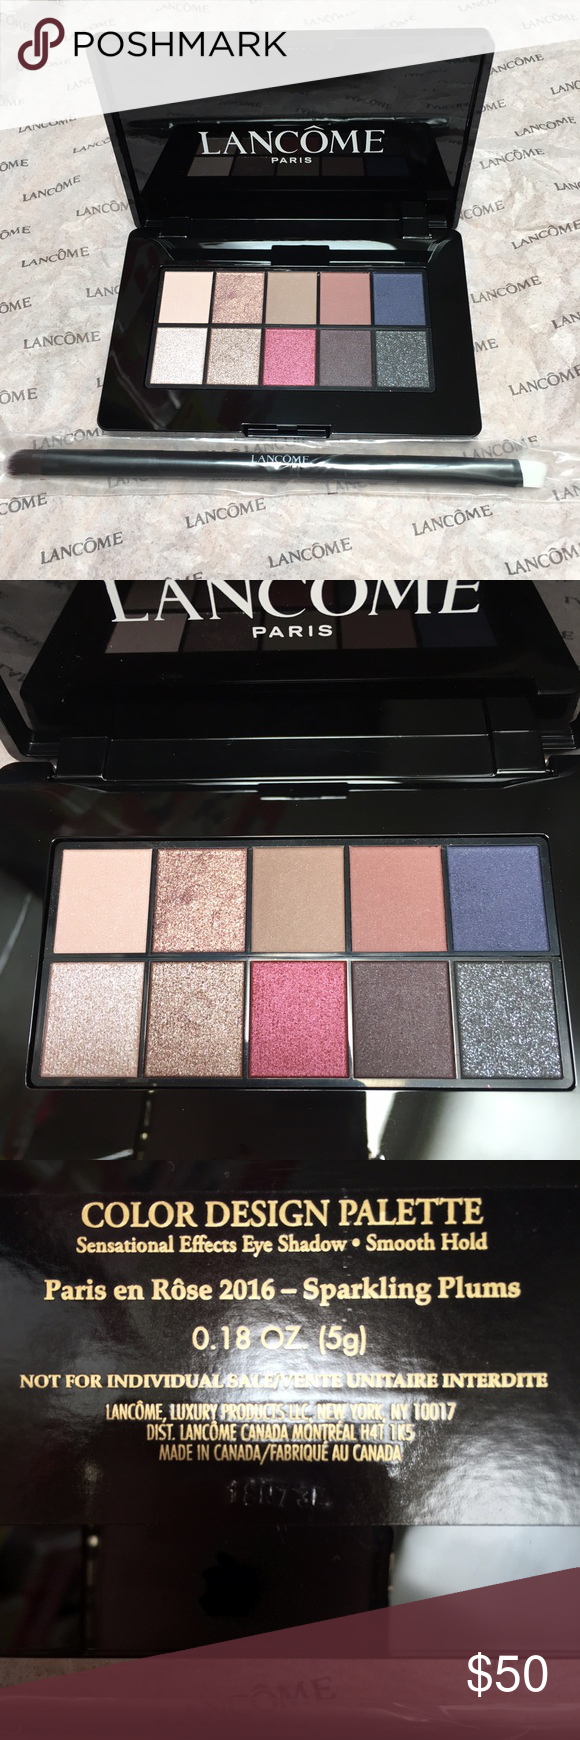 New Lancôme Eye Shadow Palette w/ Duo Brush Plums All new